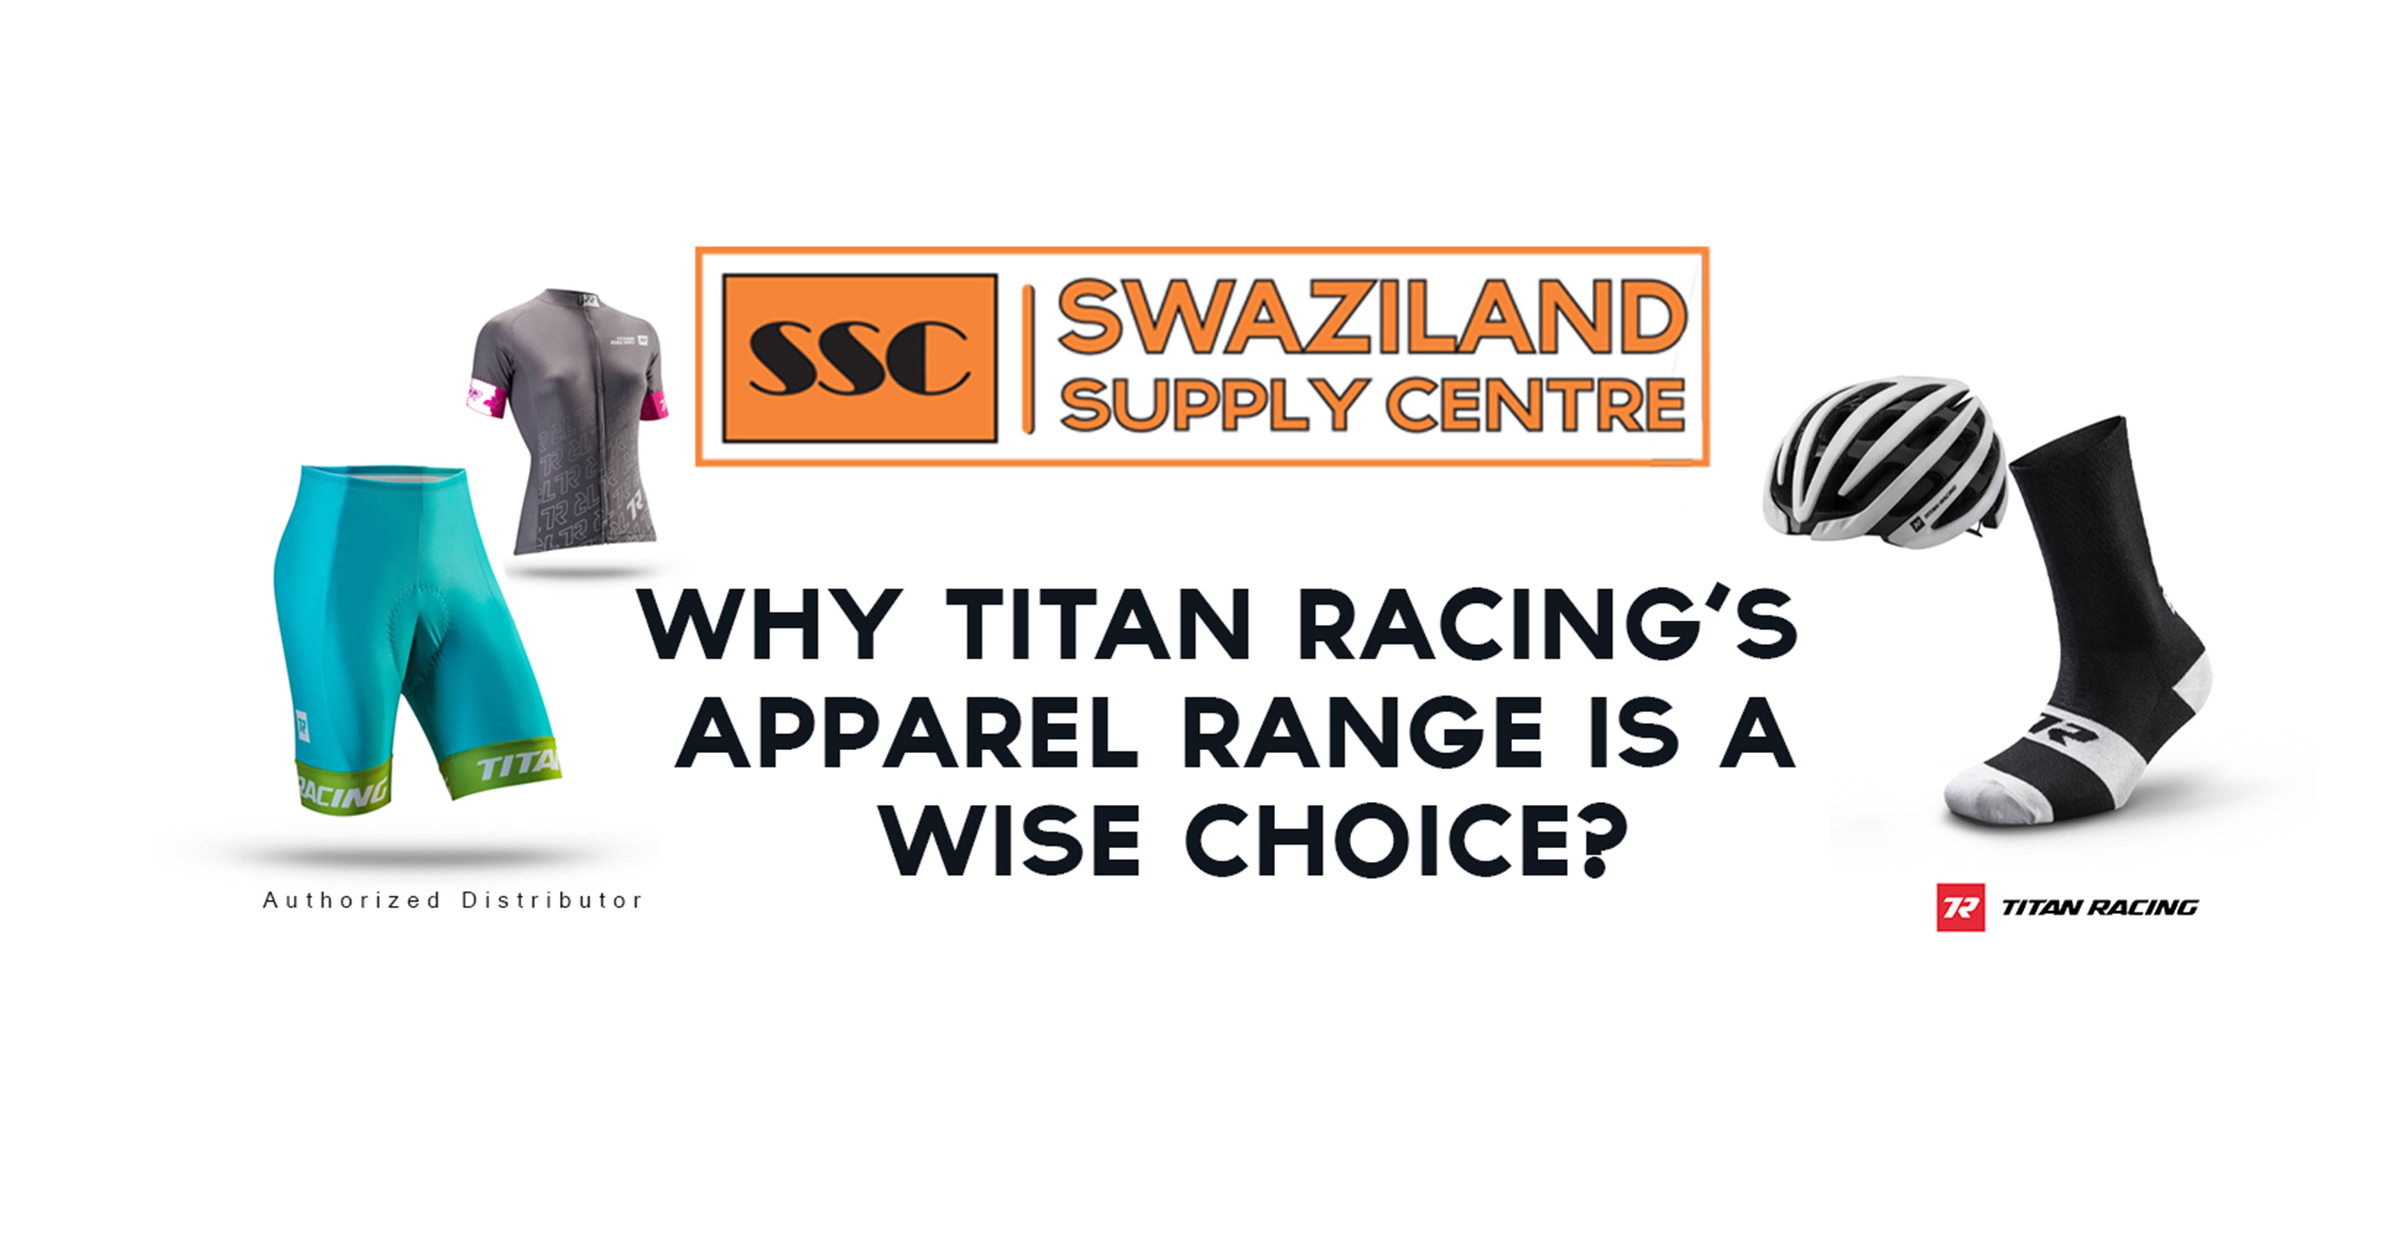 Why Titan Racing's apparel range is a wise choice?